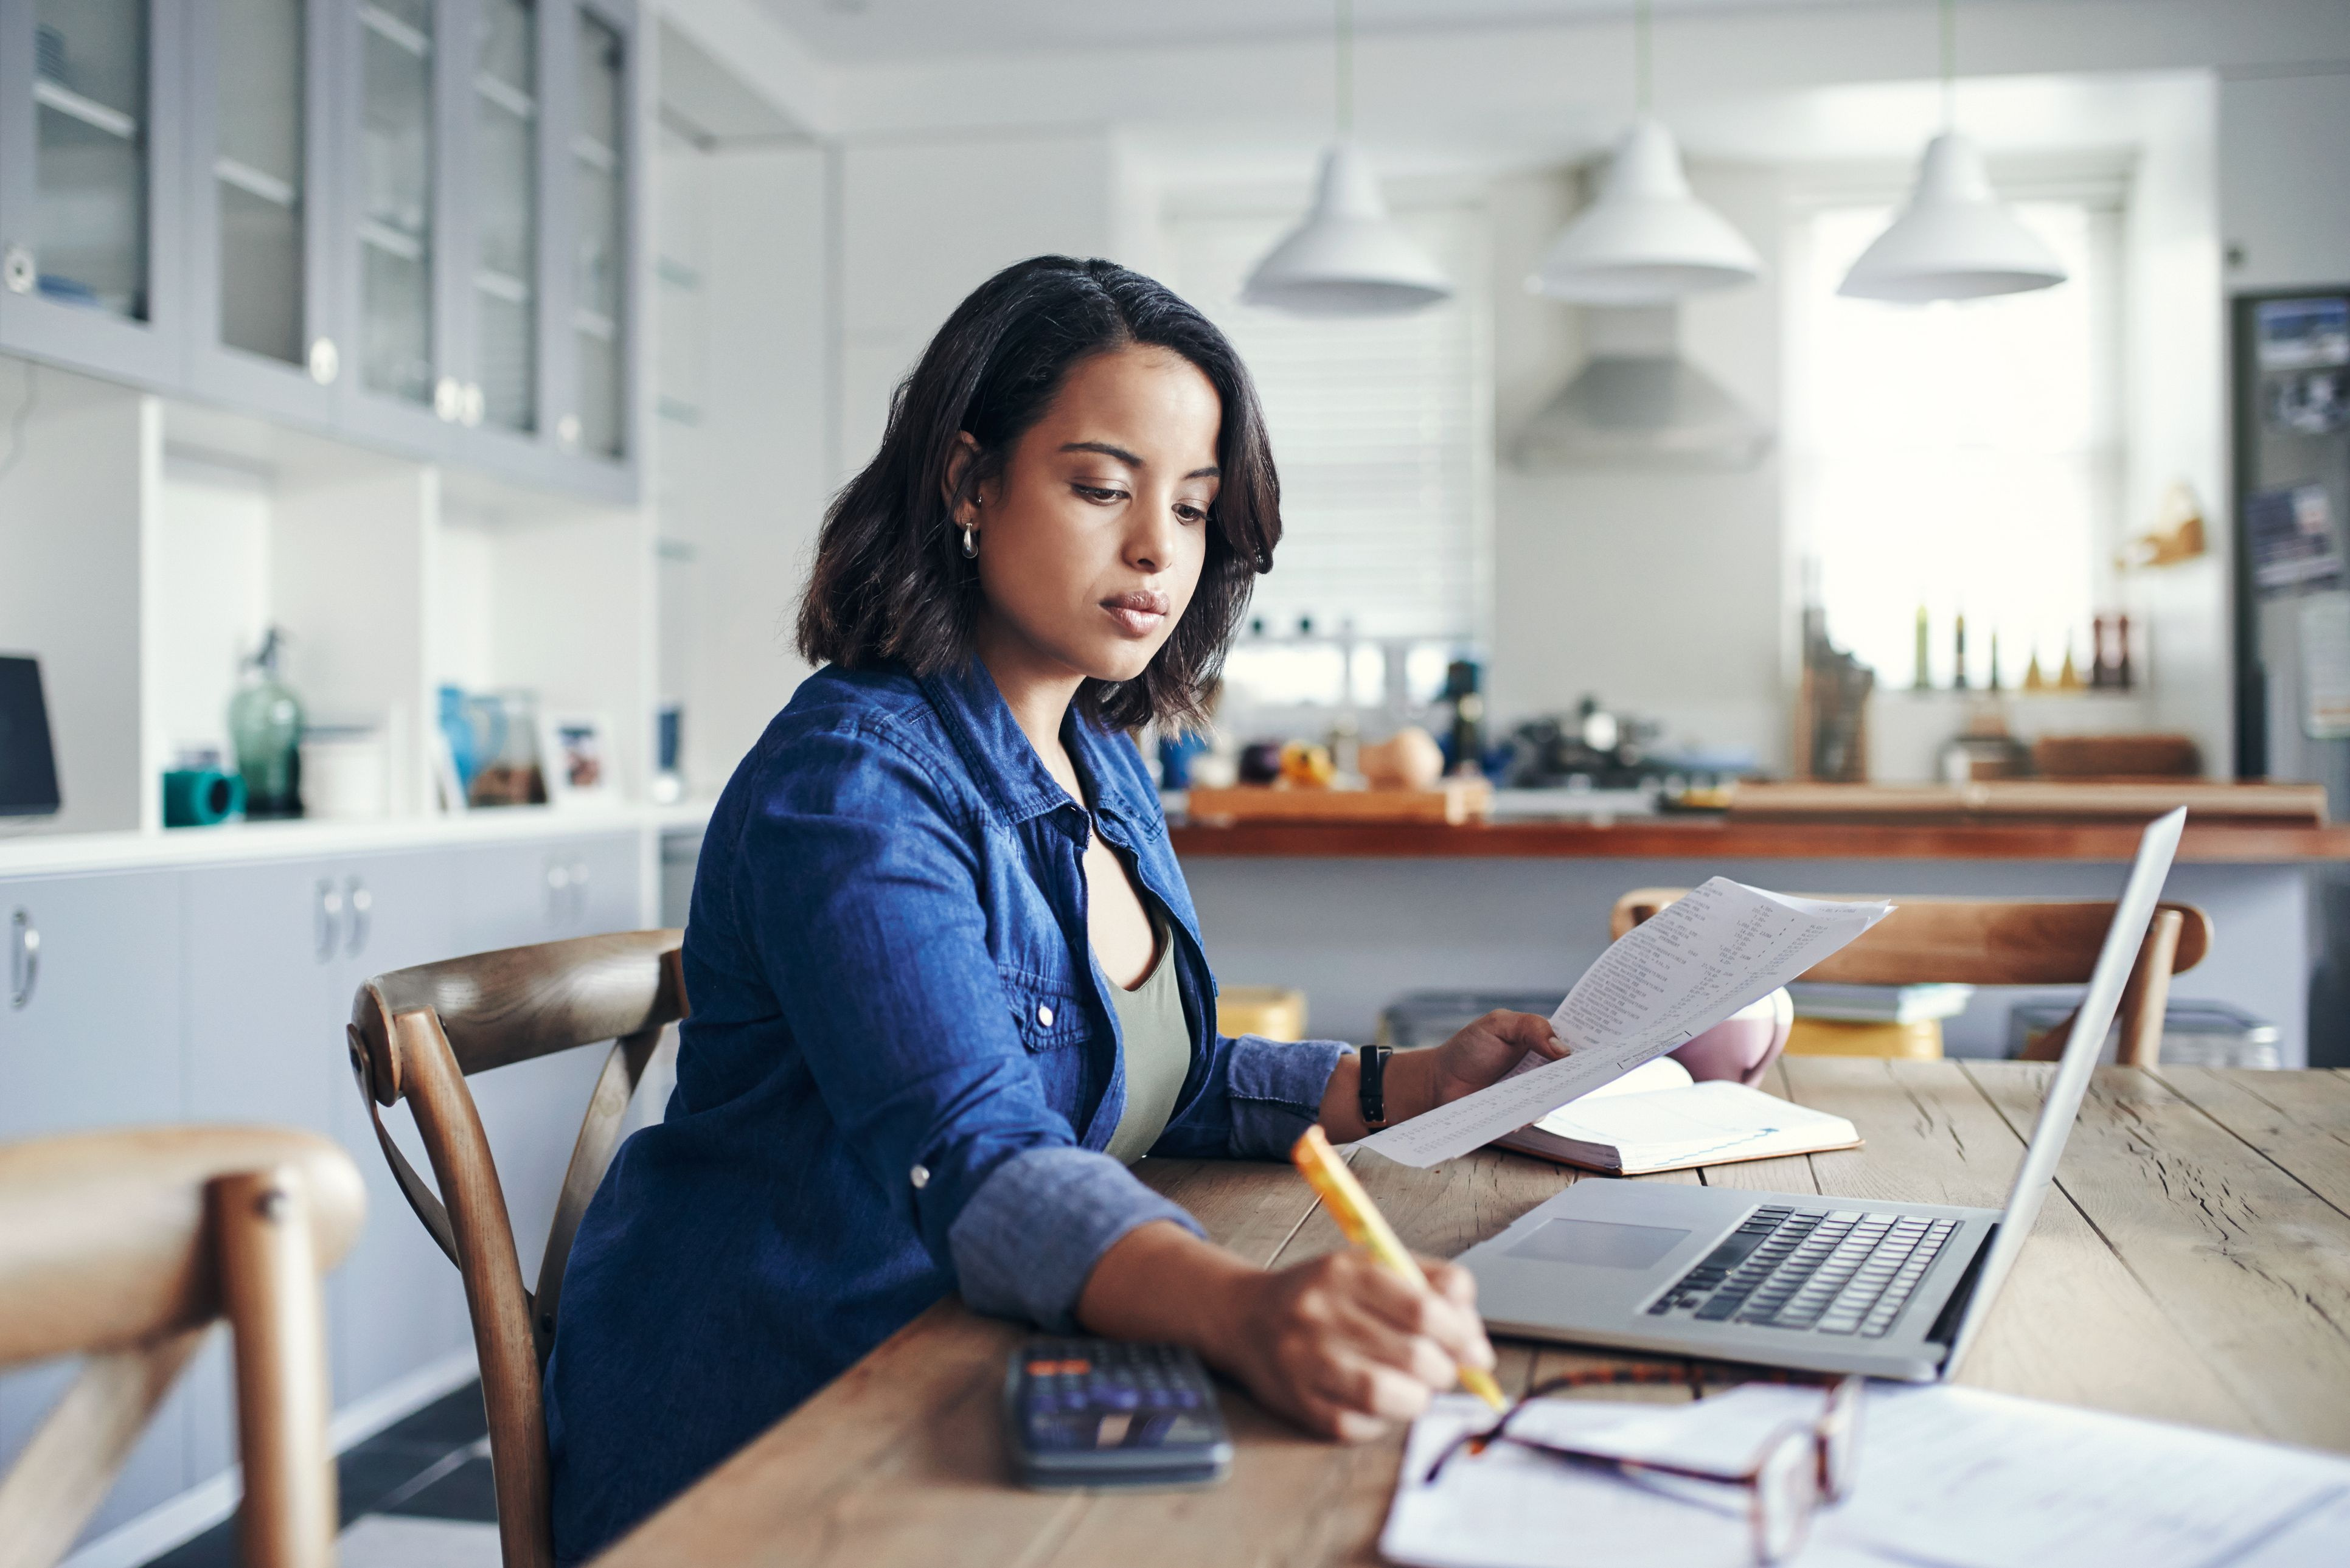 Image of a person working from home